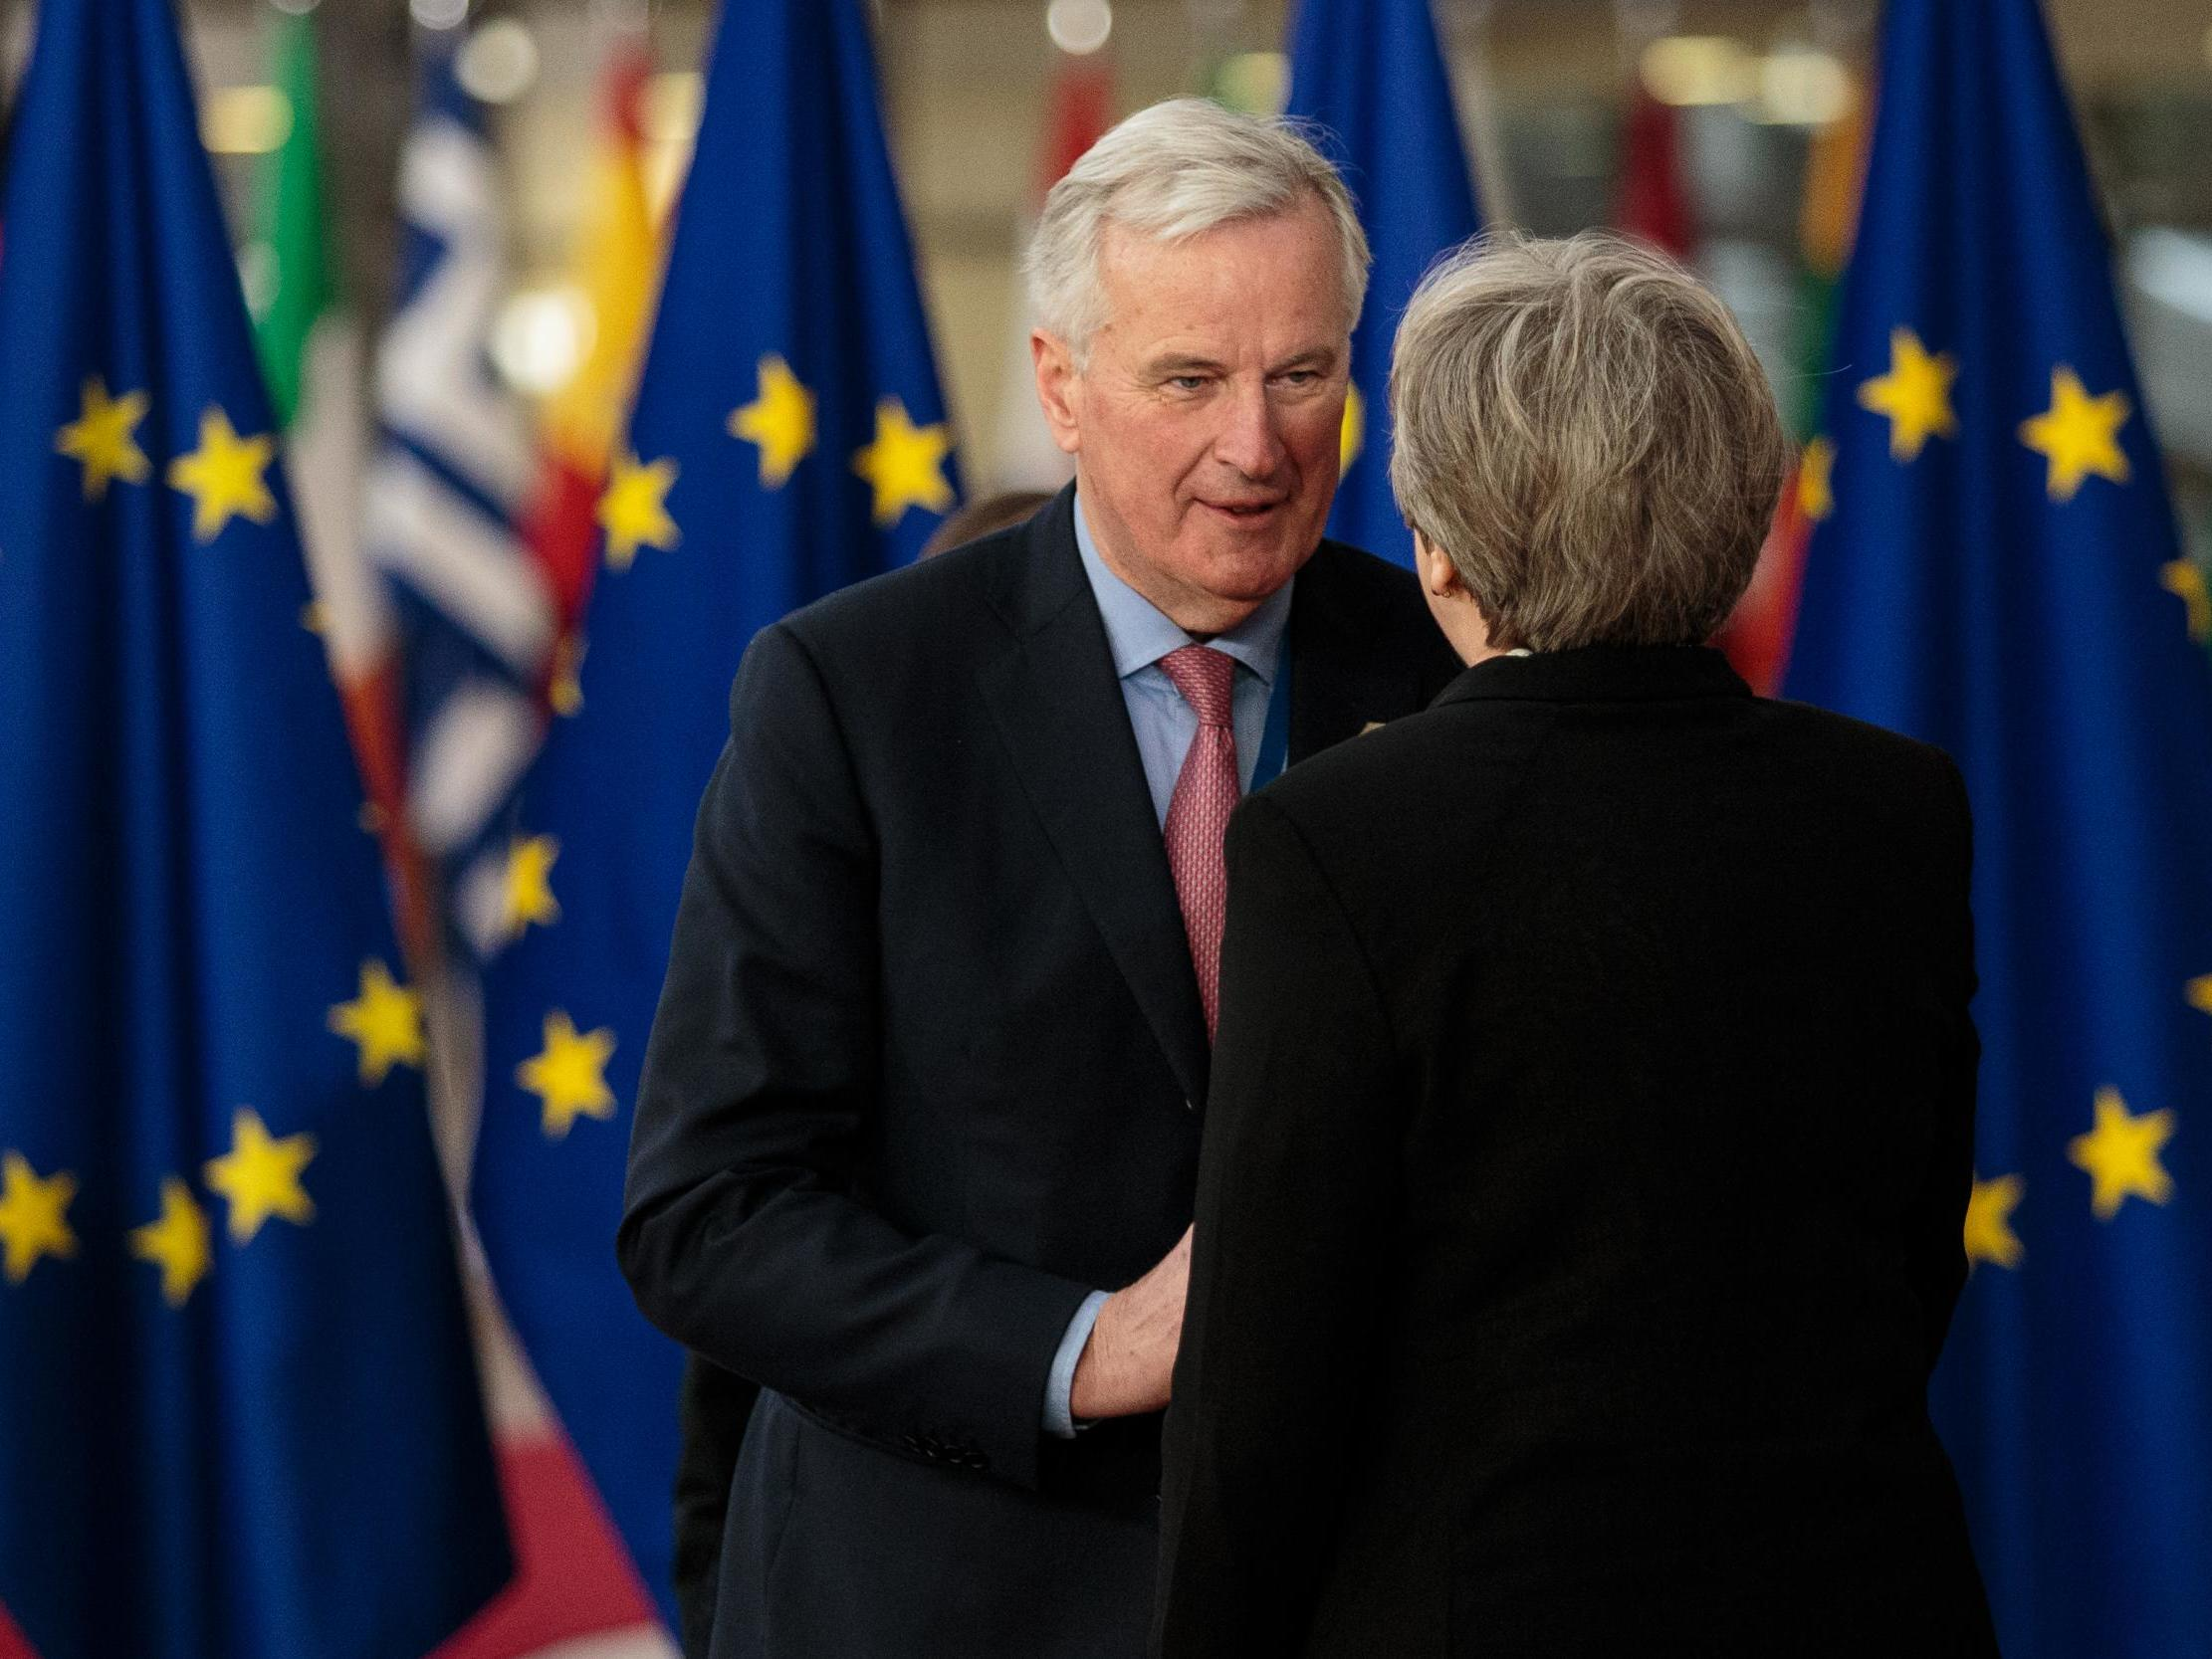 EU chief Michel Barnier gives UK ultimatum – 'If you want to delay Brexit, you need a new plan'